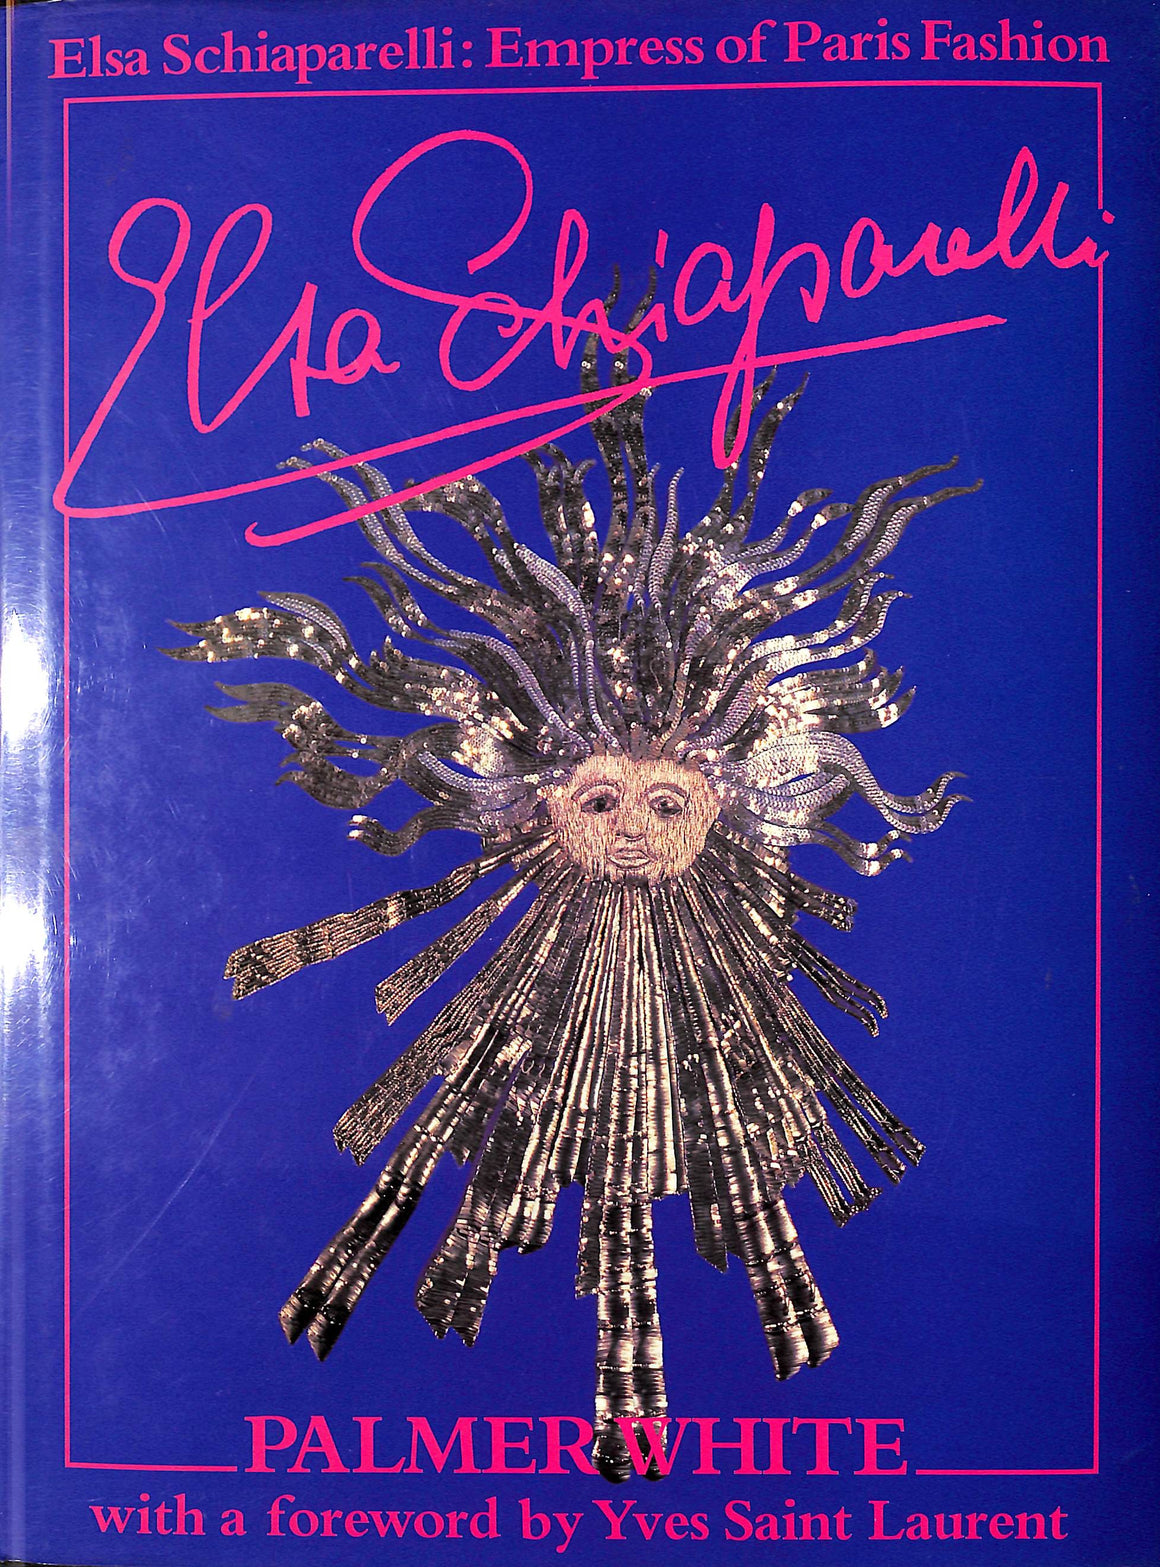 Elsa Schiaparelli: Empress of Paris Fashion